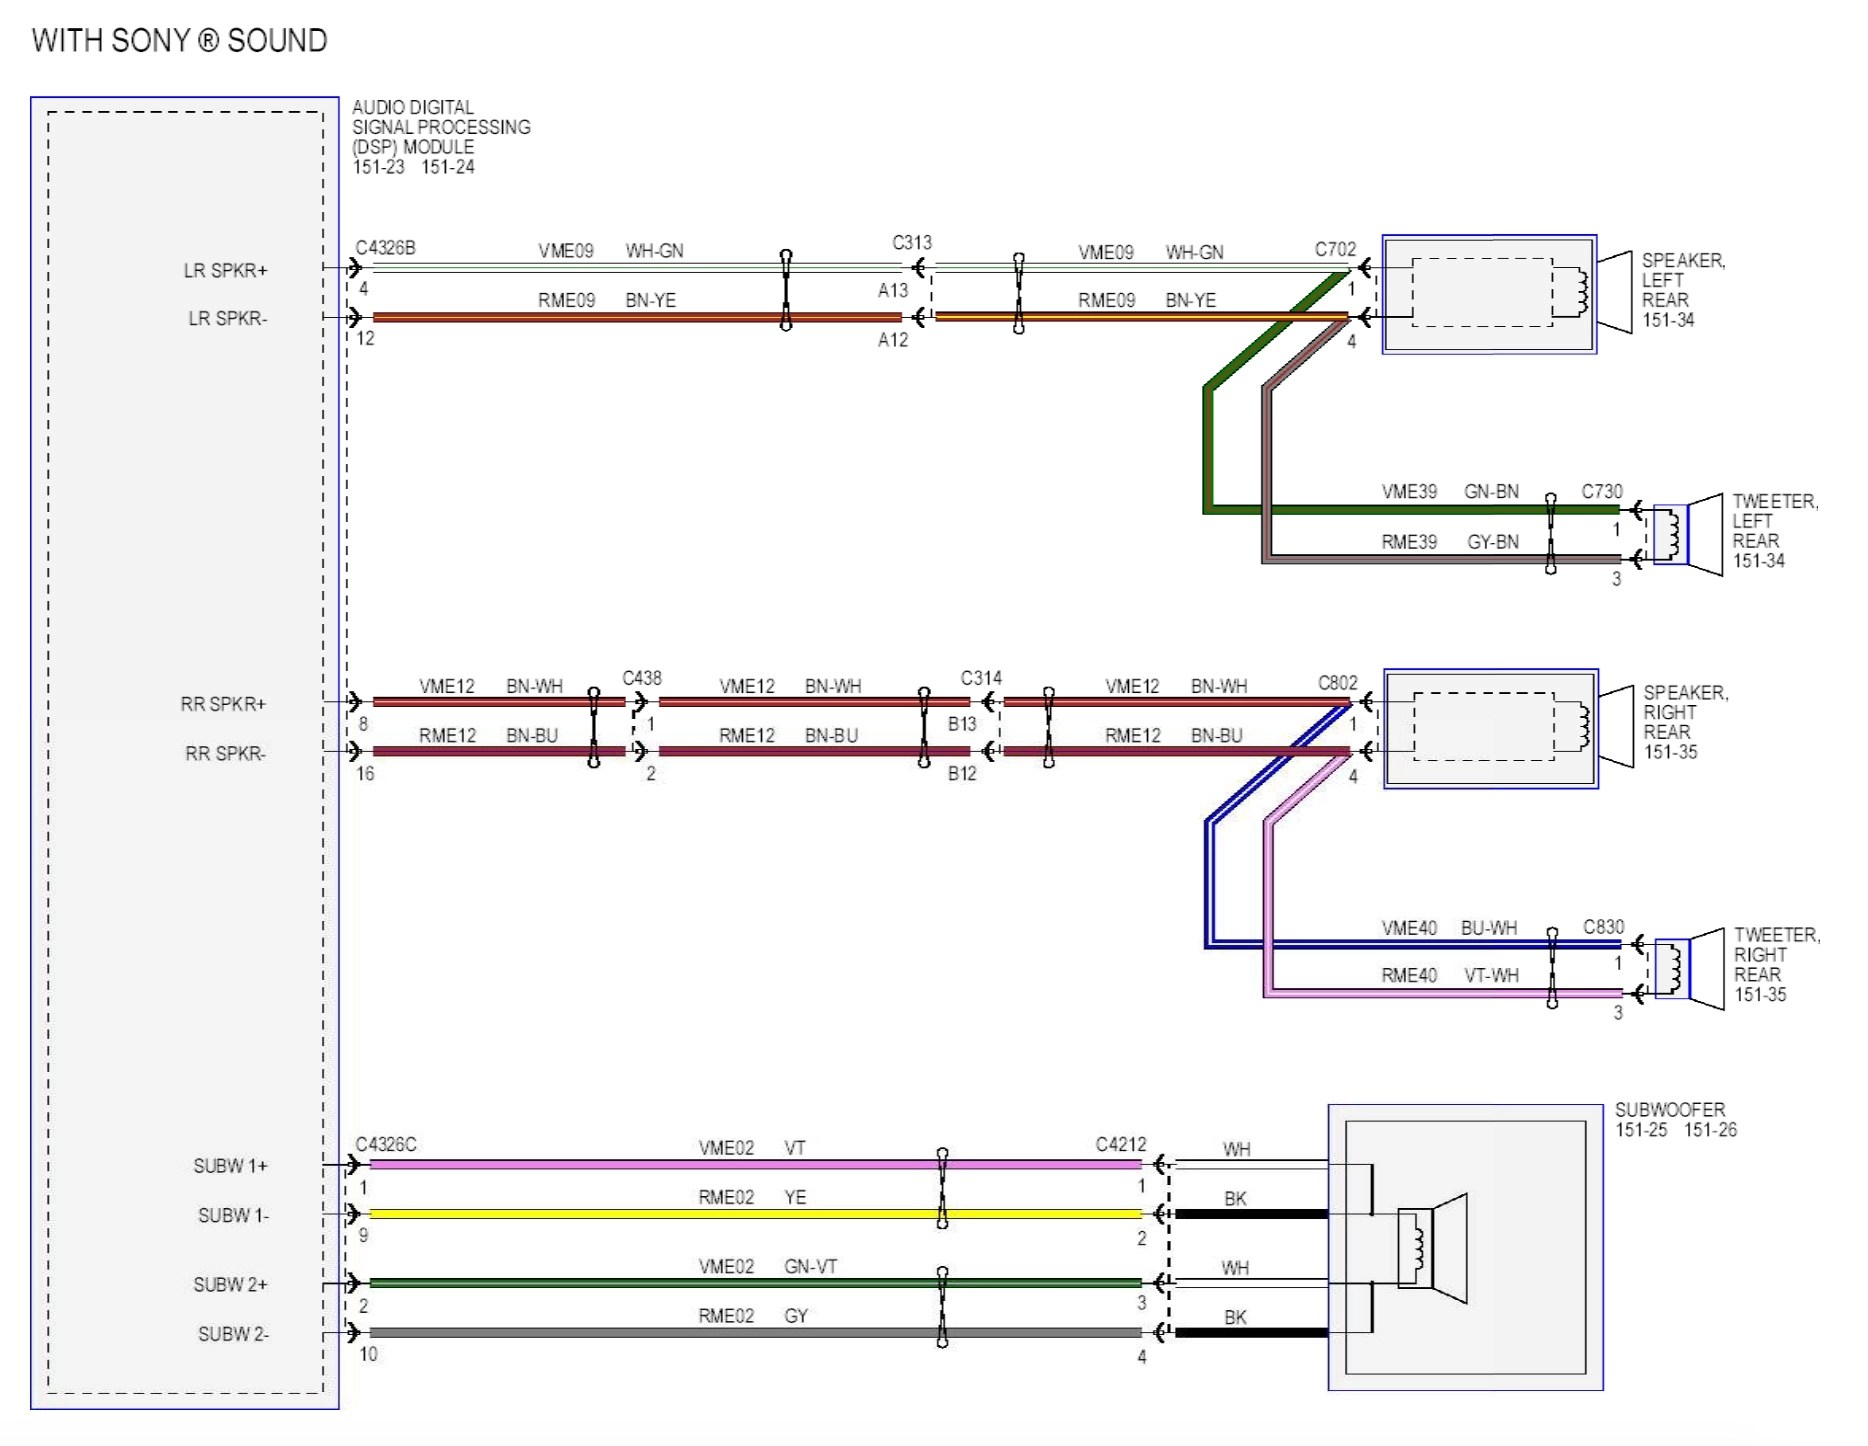 speaker wiring diagram square d water pump pressure switch wire colors name 2 jpeg views 1655 size 337 kb